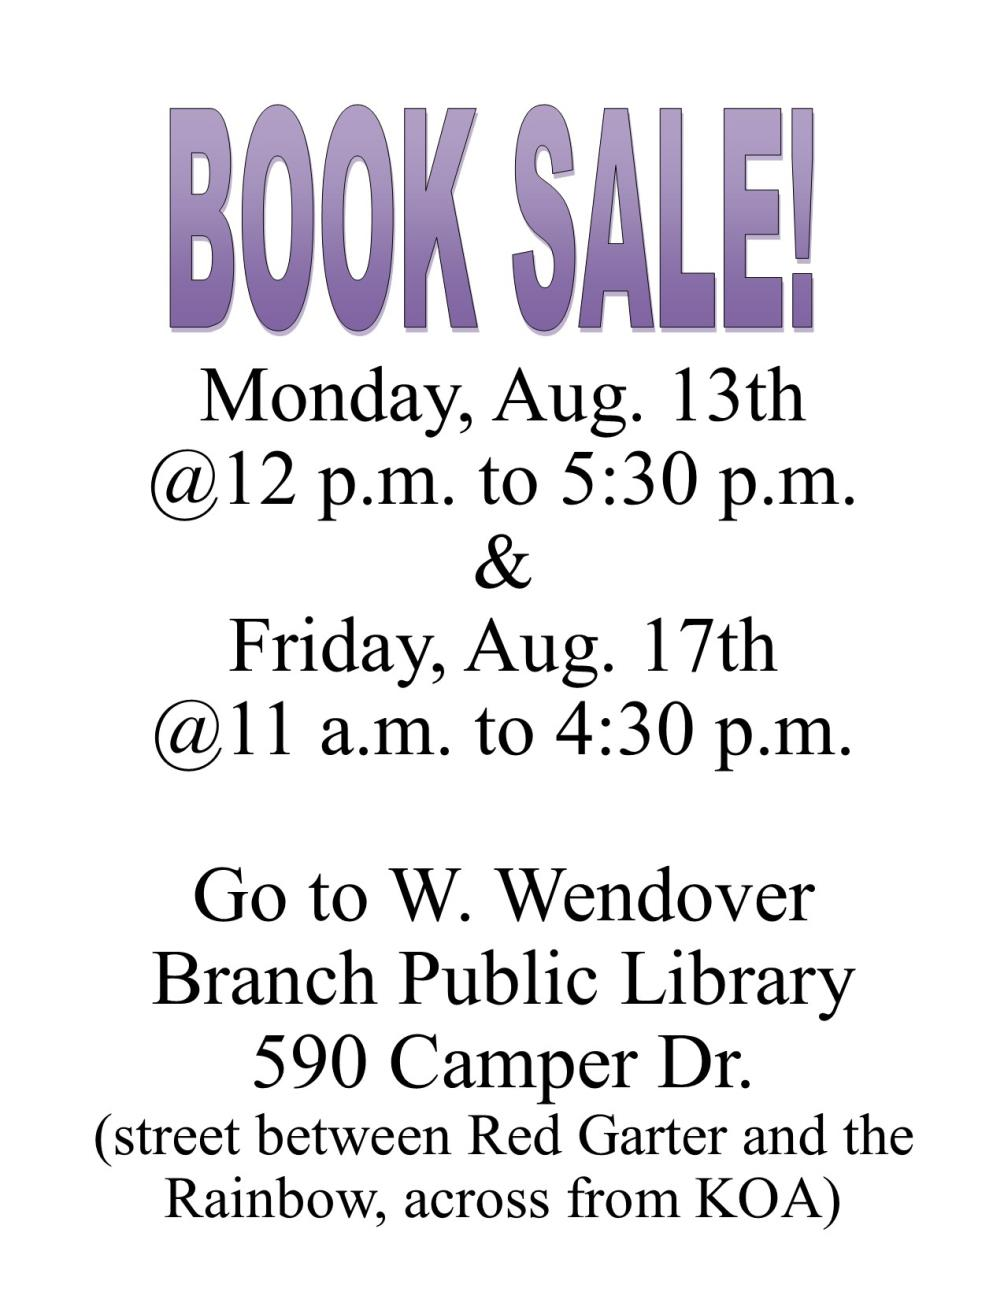 West Wendover Library - Book Sale